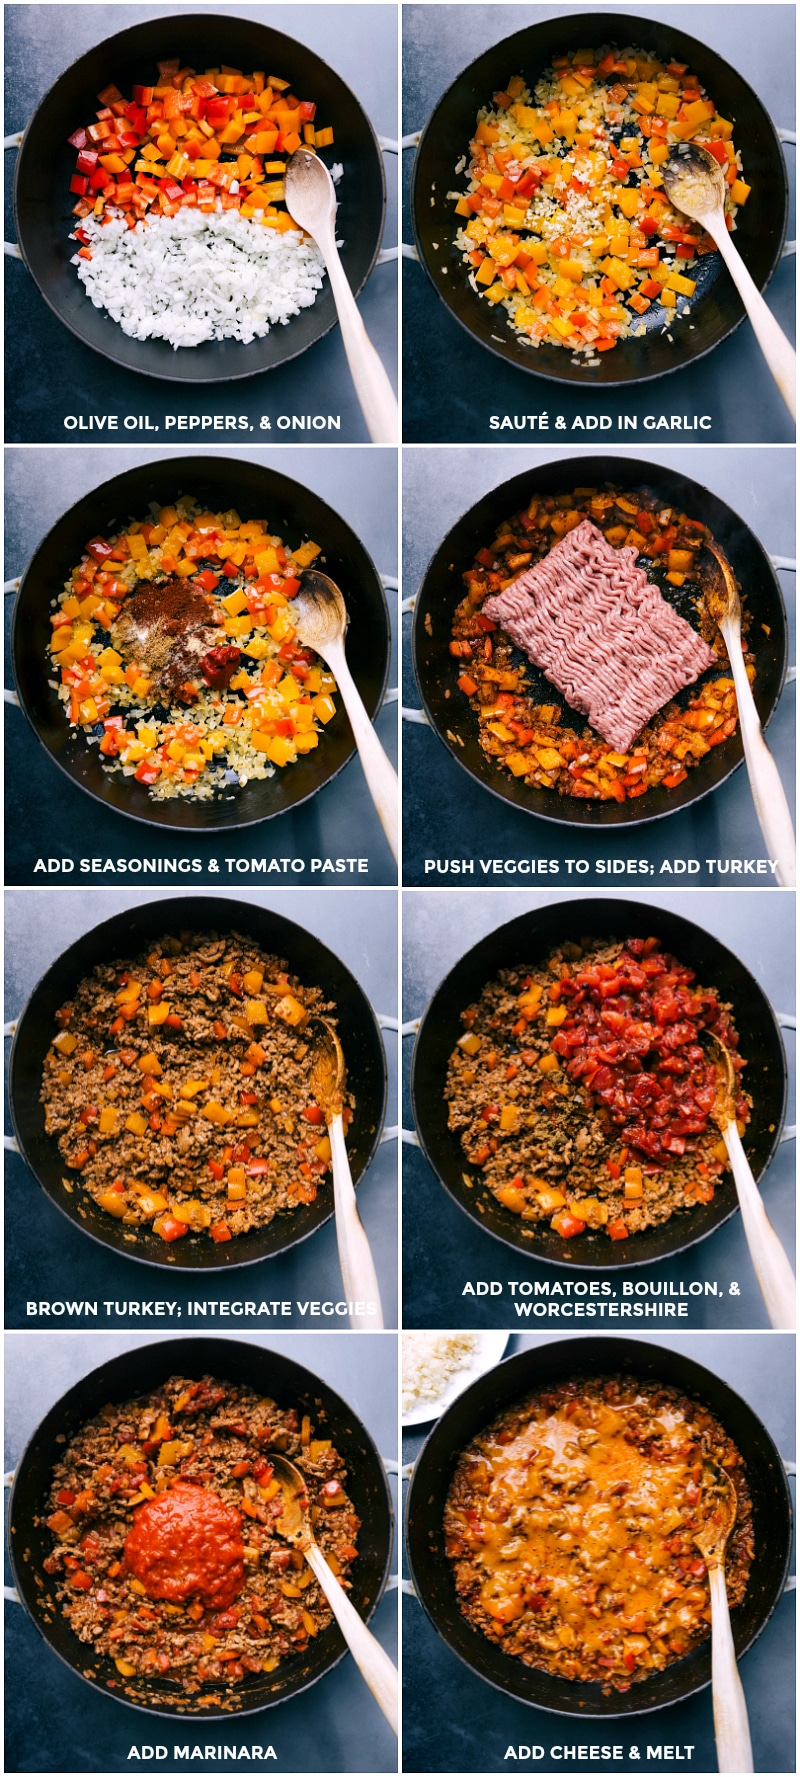 Process shots-- images of the veggies, meat, seasoning, marinara, and cheese being added to the skillet.